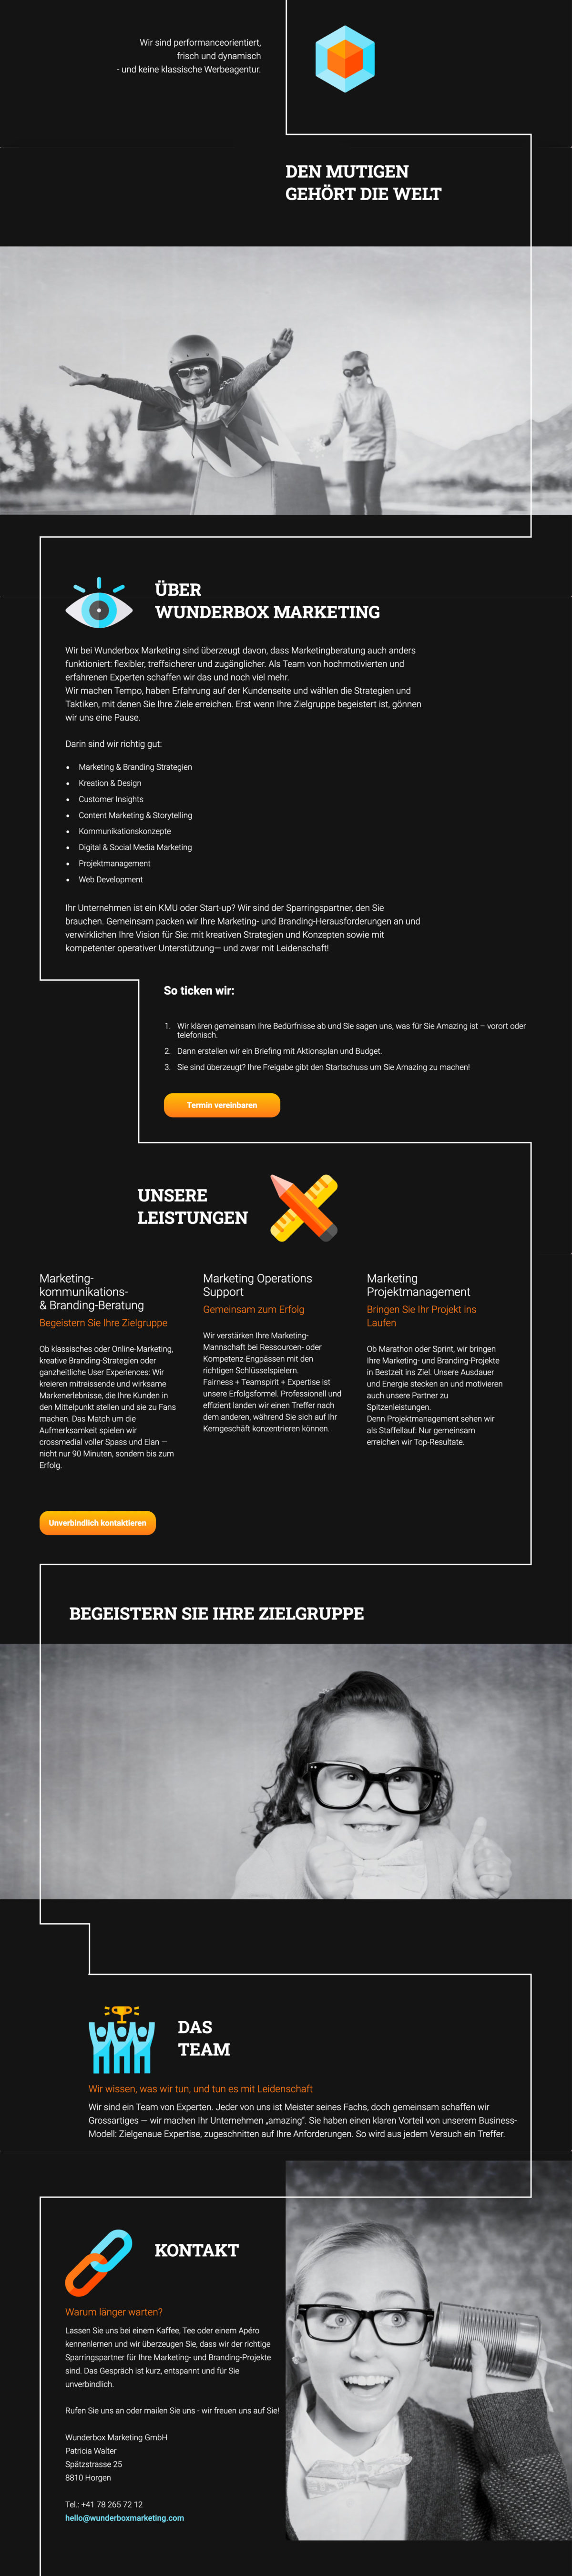 Wunderbox Marketing Website Screenshot.